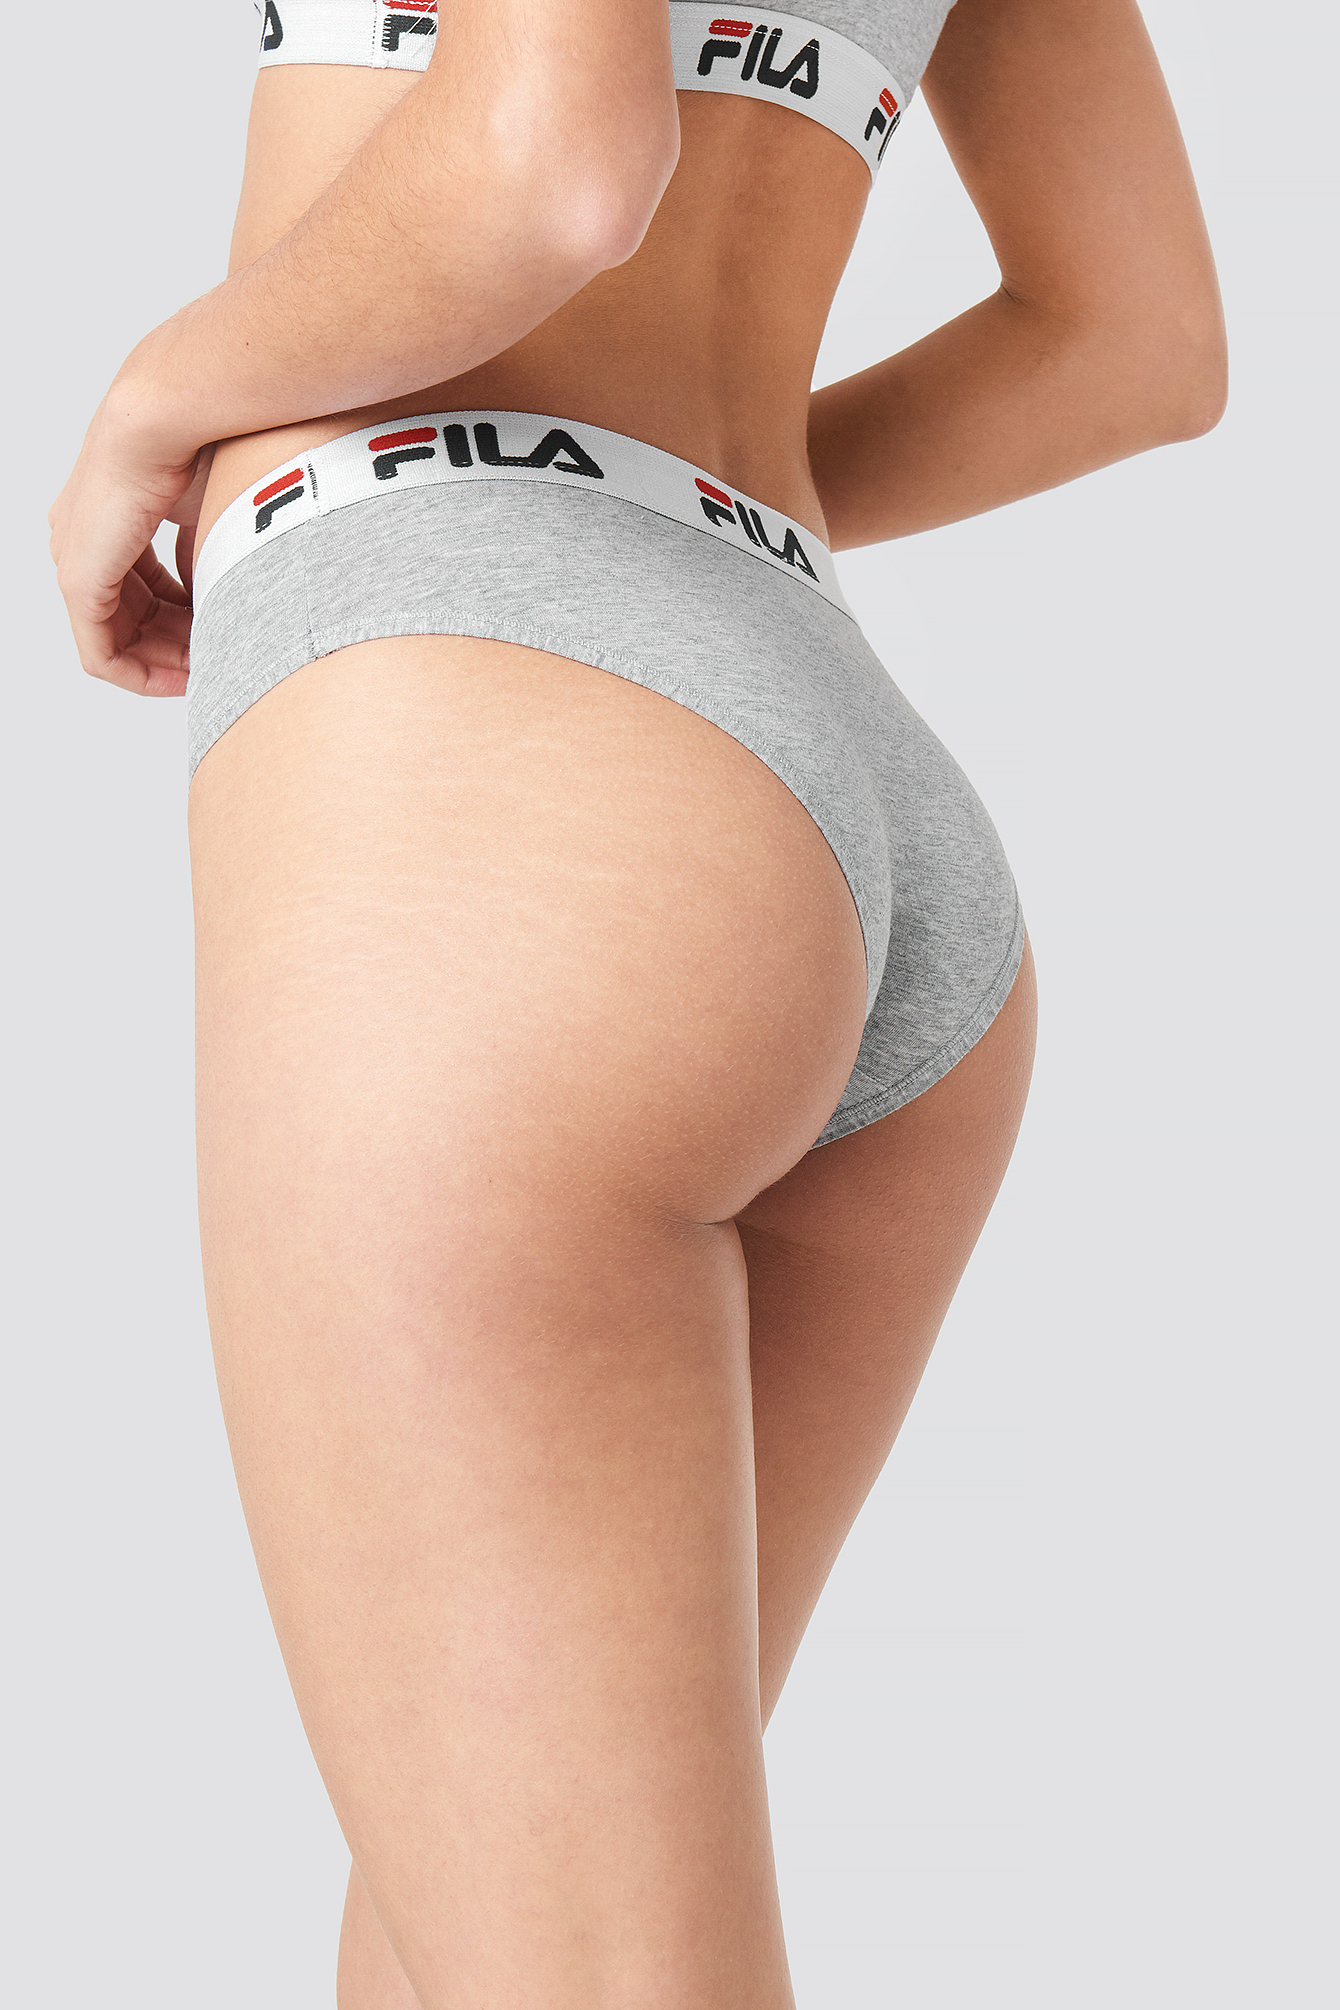 Fila Brief FU6043 NA-KD.COM